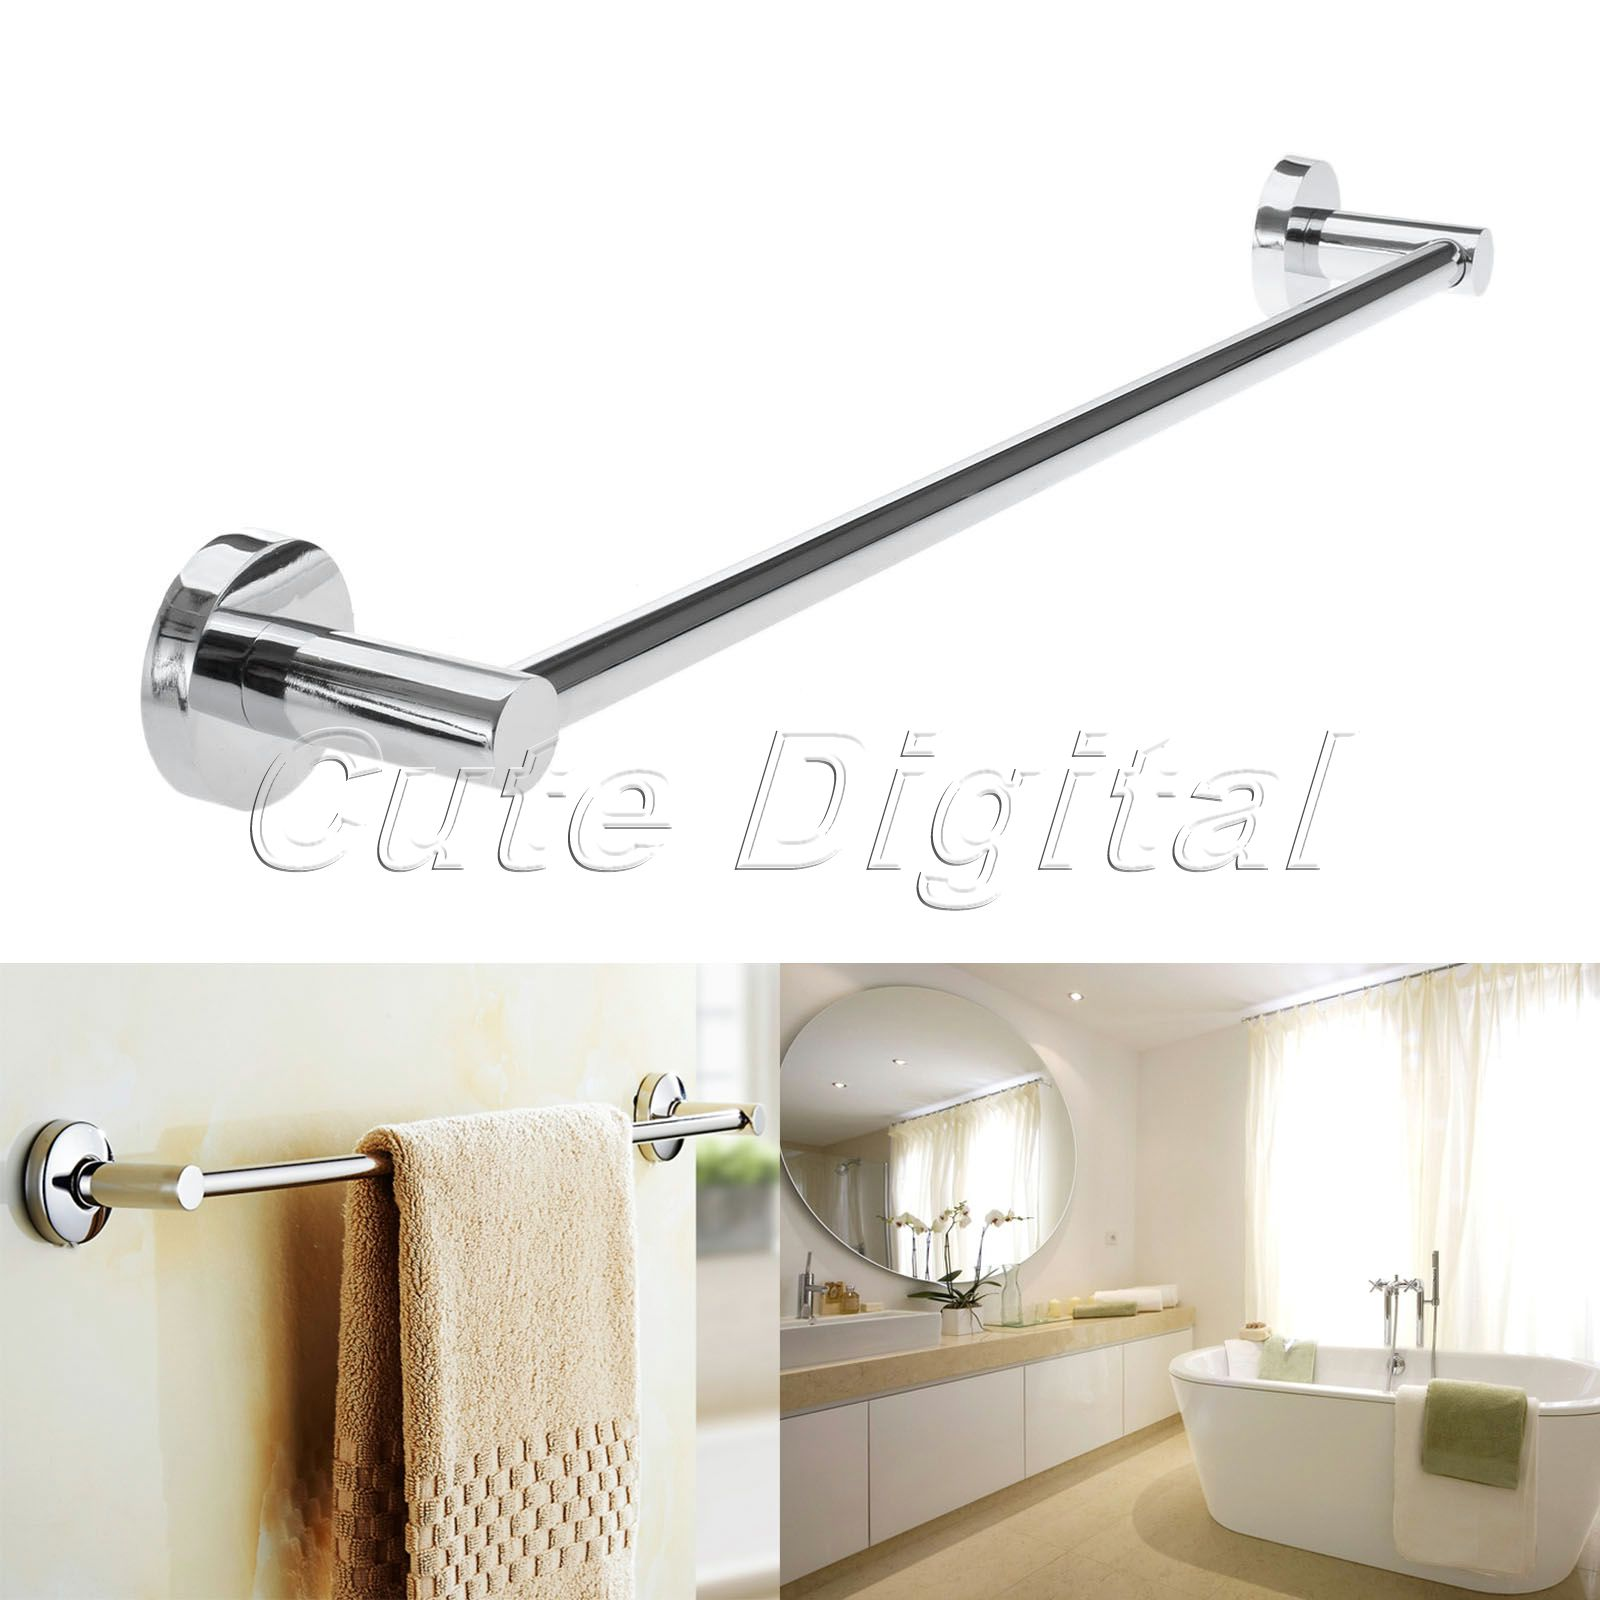 stainless steel towel rack wall mounted bathroom towel holders single rail towel bars bath storage shelf bathroom accessories in towel bars from home - Bathroom Accessories Towel Rail